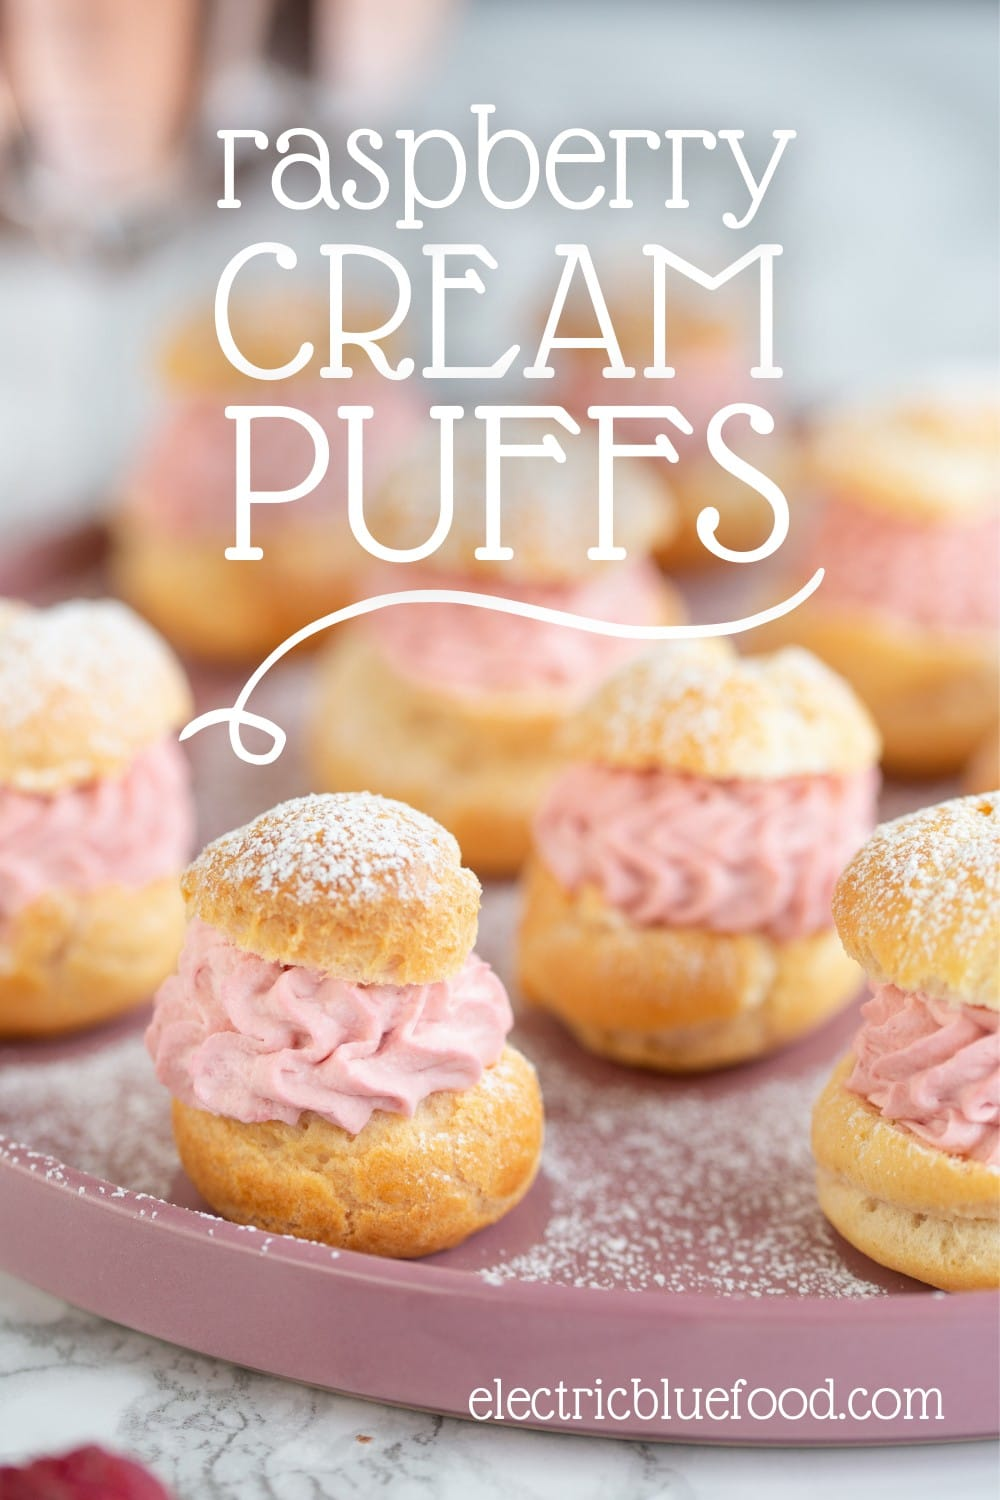 Homemade choux pastry puffs filled with a raspberry cream. These raspberry cream puffs from scratch are an elegant dessert to serve your guests. This small batch yields 10-12 puffs.